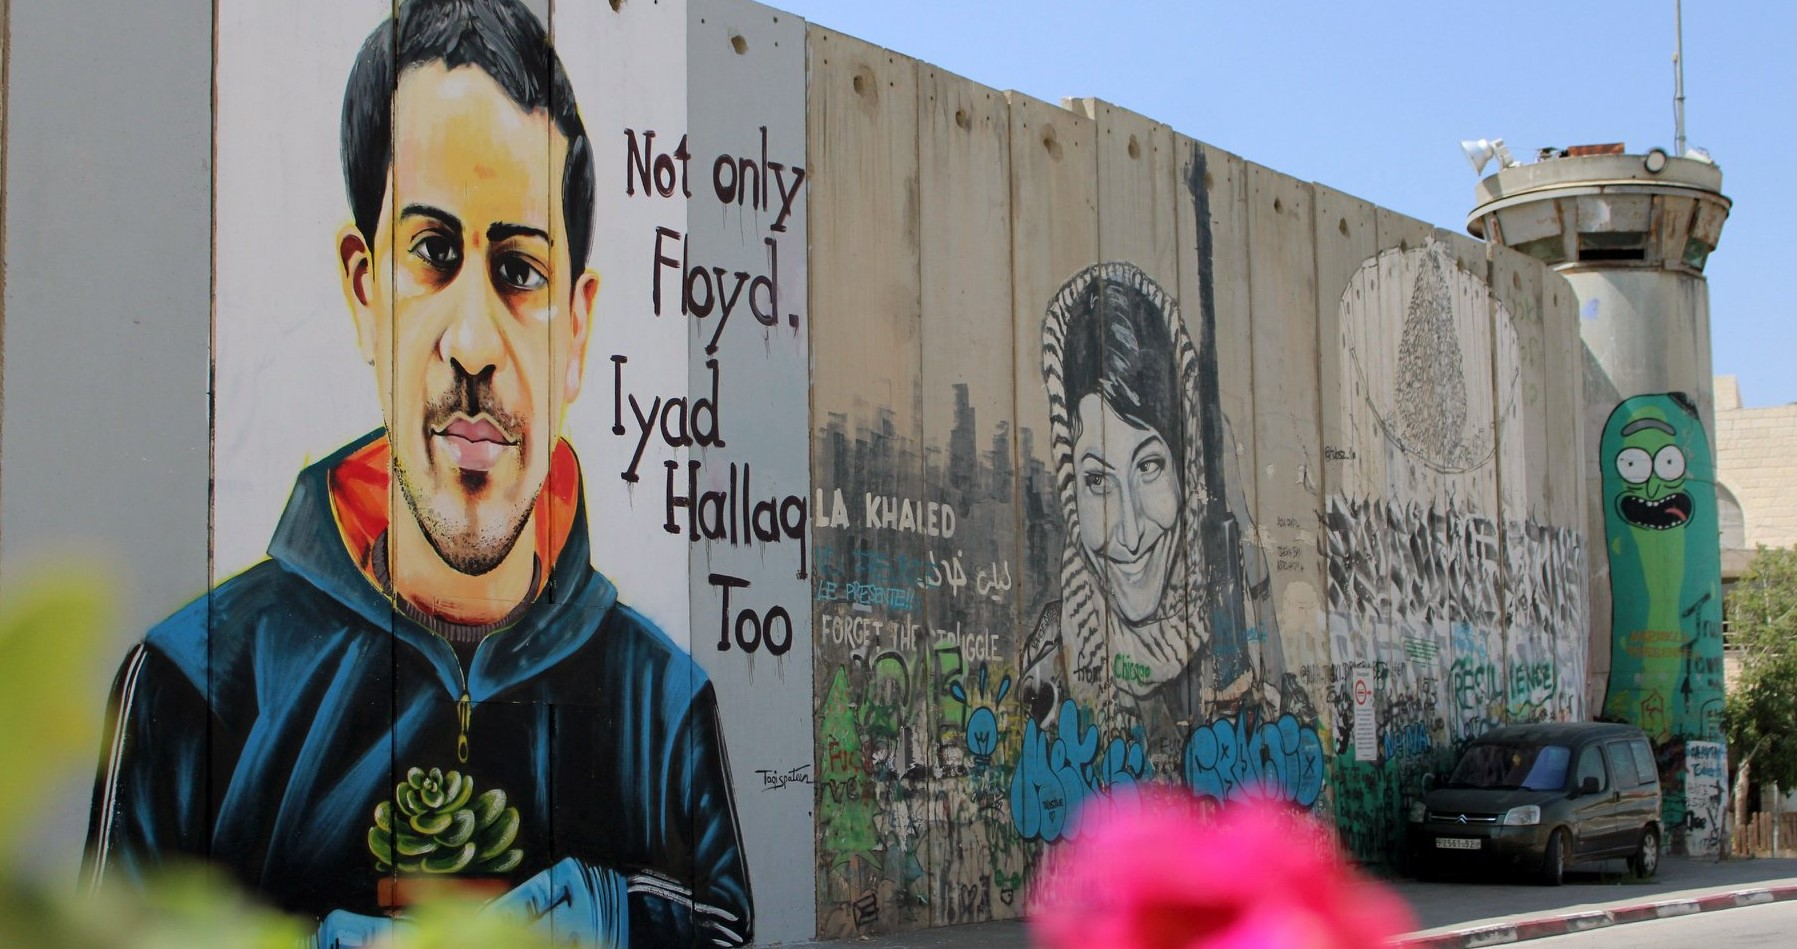 """Not only Floyd, Iyad Hallaq Too,"" a portrait of the 32-year-old autistic Palestinian man killed by Israeli police in occupied East Jerusalem in May 2020, rendered on Israel's ""Apartheid Wall"" separating Jerusalem and Bethlehem."